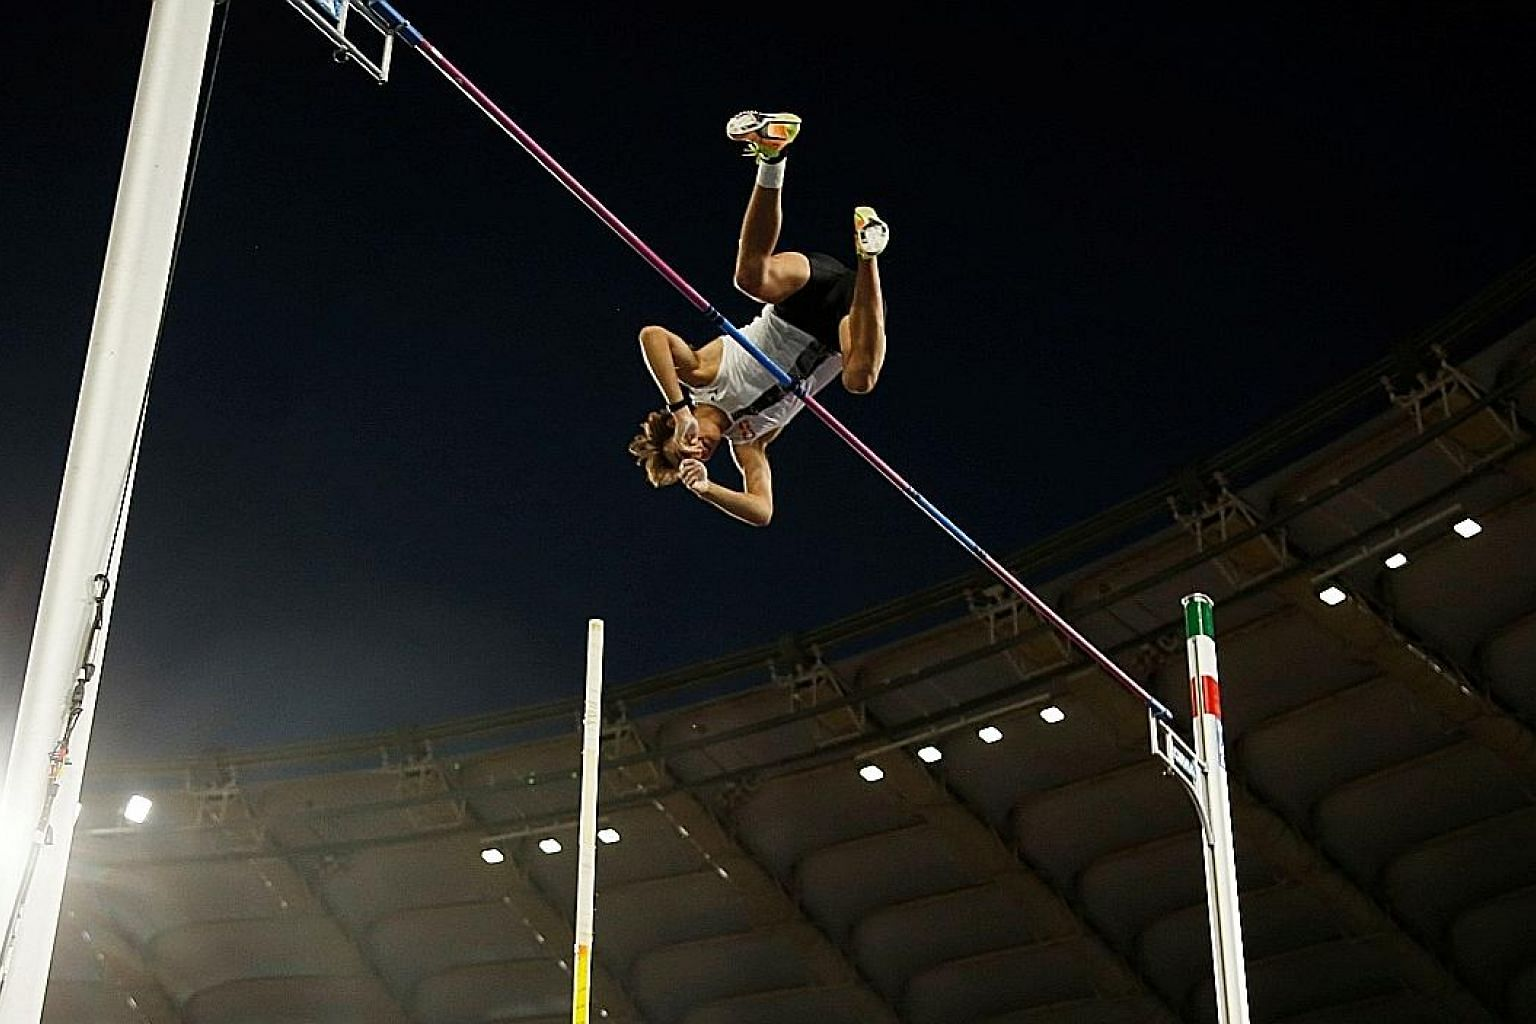 """Left: Sweden's Armand Duplantis clearing 6.15m on his second attempt at the Diamond League meet in Rome on Thursday. Above: Duplantis, 20, said it felt """"surreal and super crazy"""" to break Sergey Bubka's 26-year-old outdoor pole vault world record."""